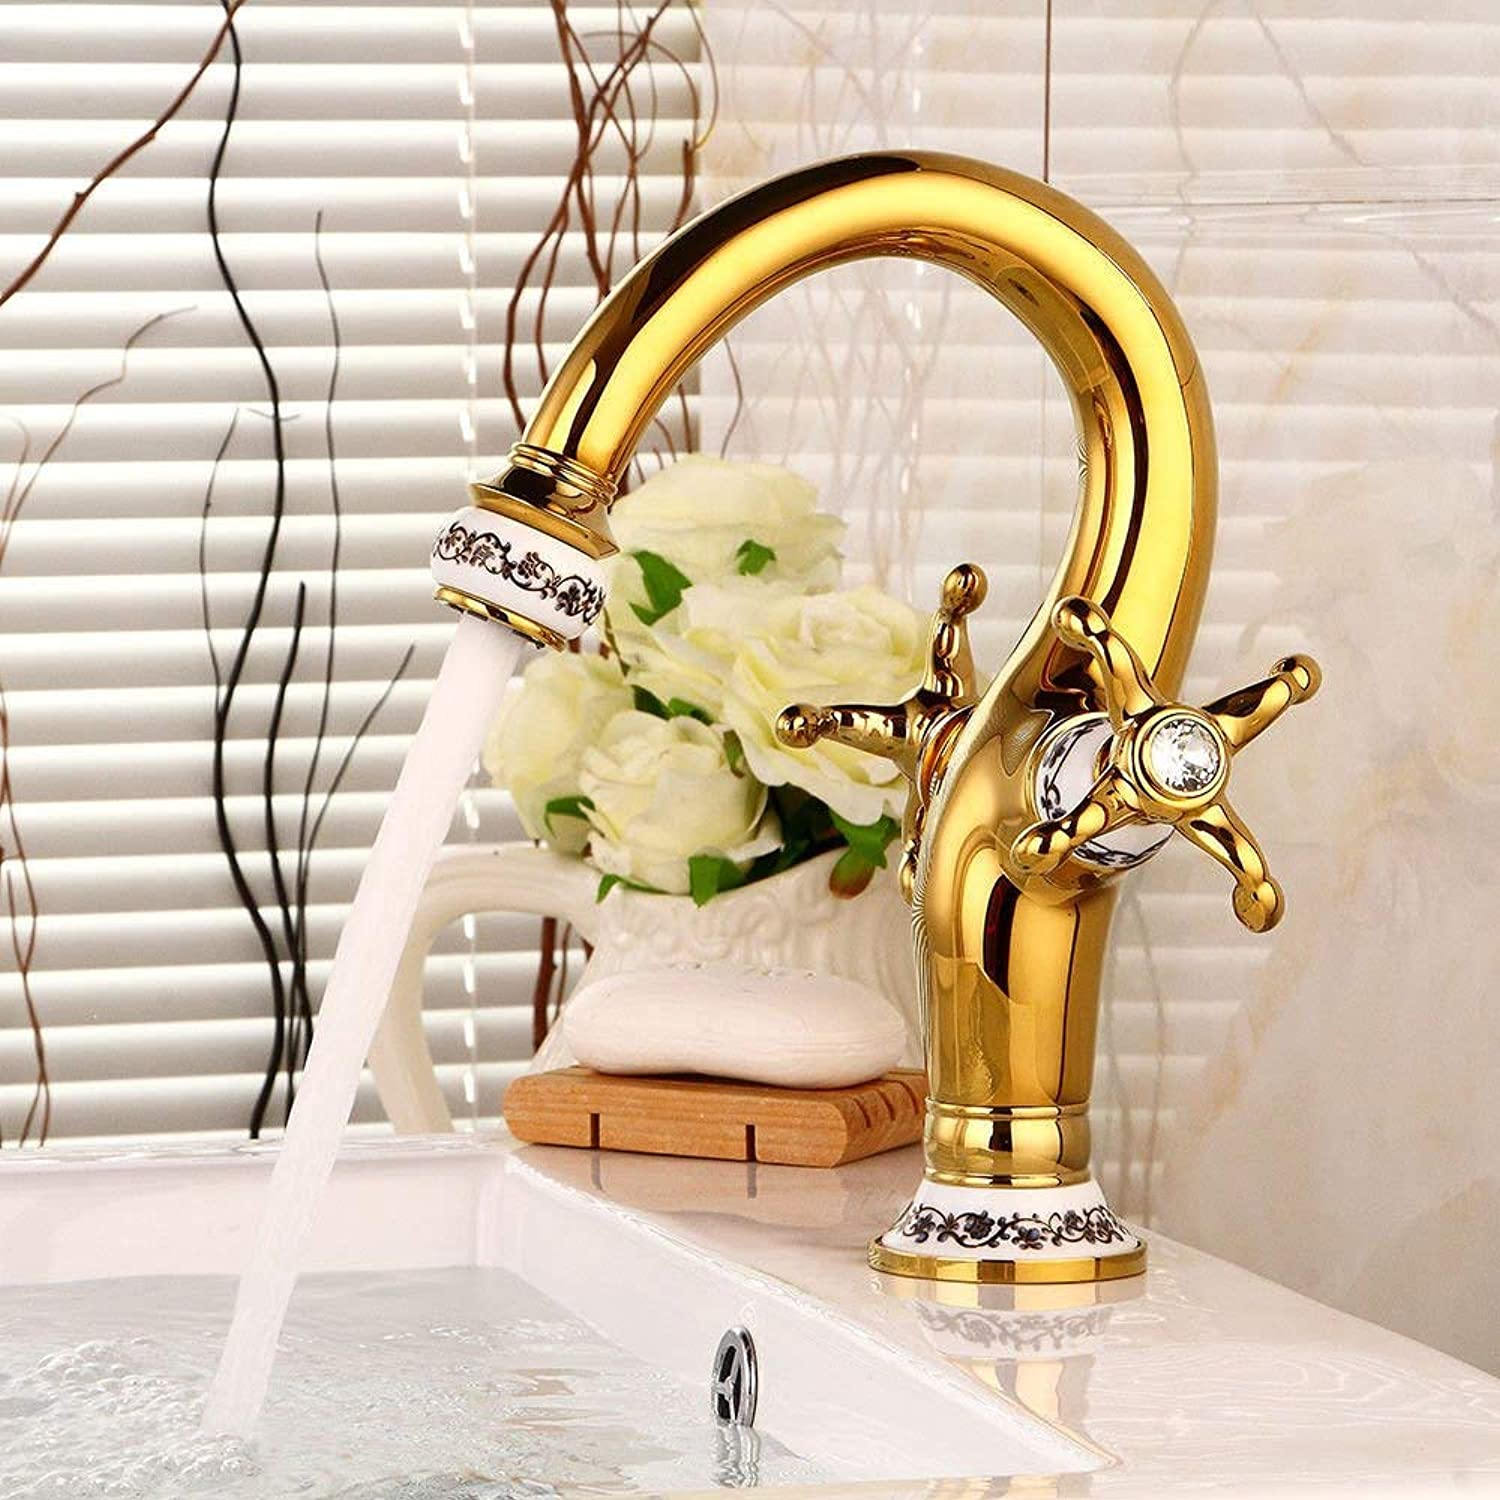 Bathroom Vanity Sink Faucet gold Retro Hot and Cold Water Double Handle Bathroom Basin Sink Tap Bathroom Faucet